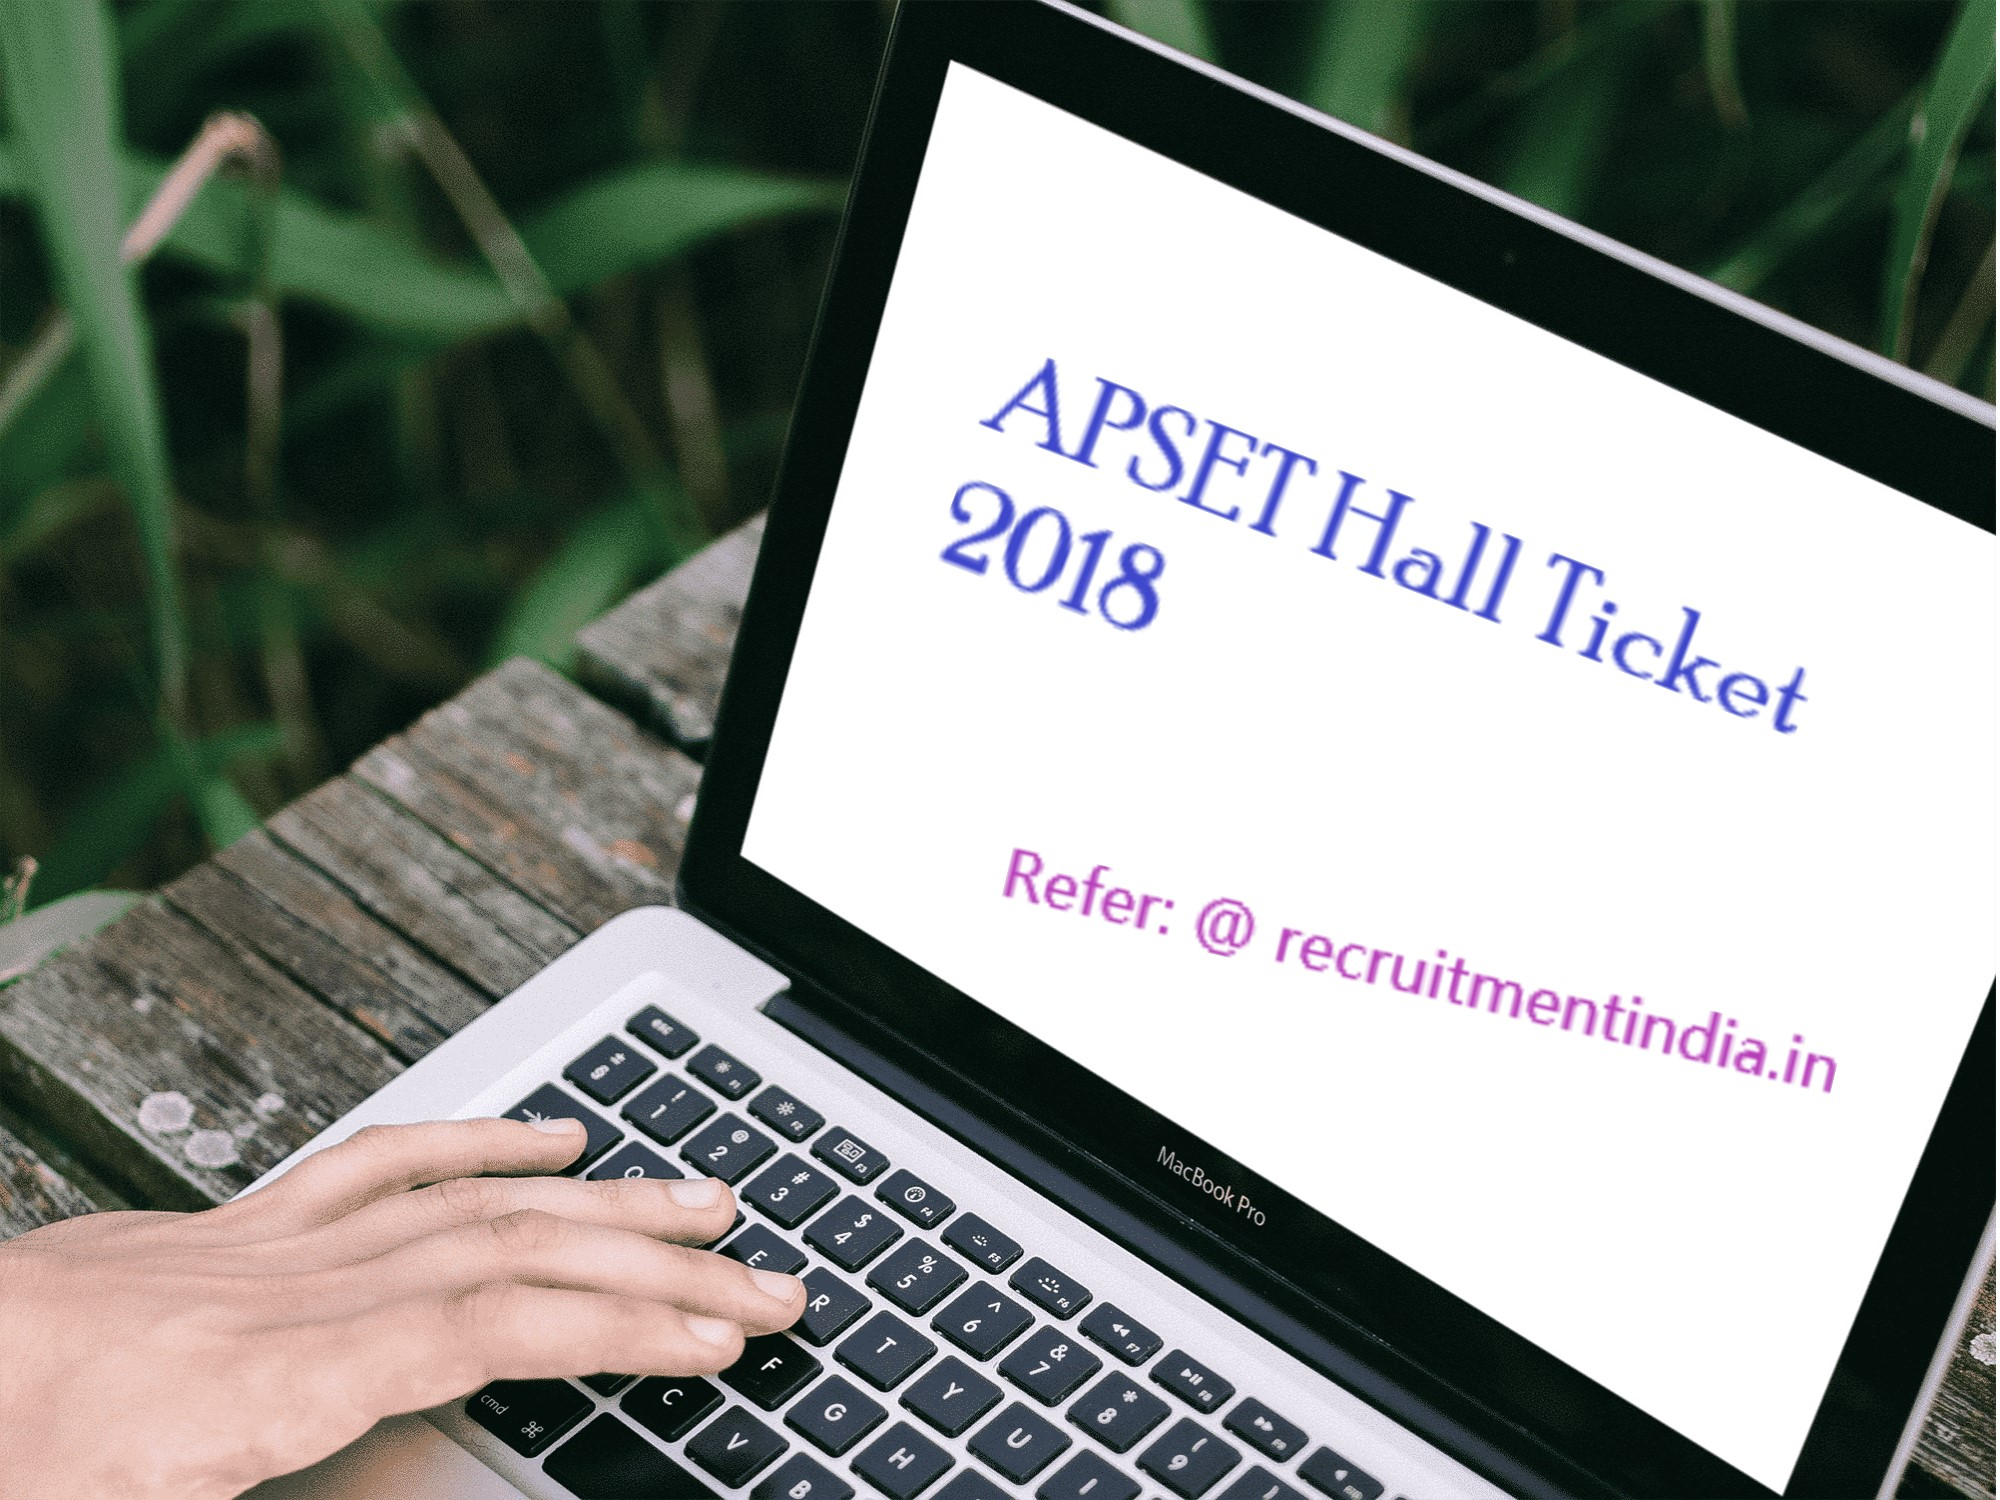 APSET Hall Ticket 2018